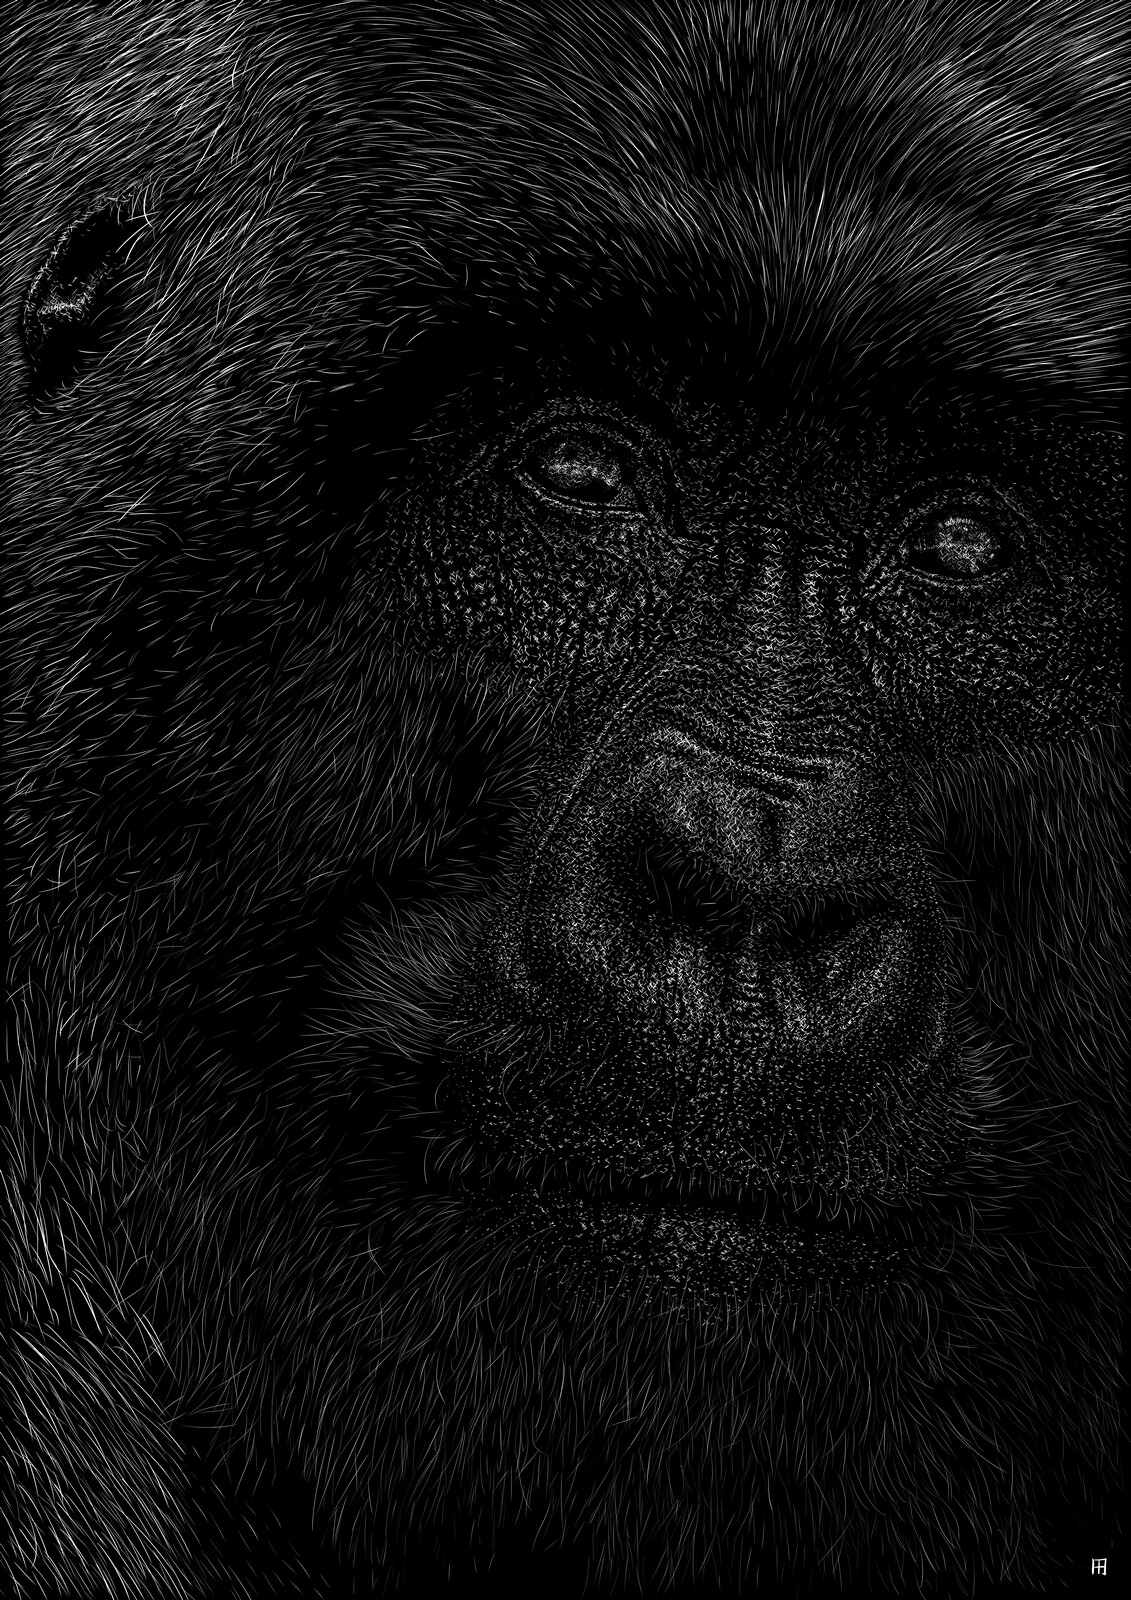 hominoidea